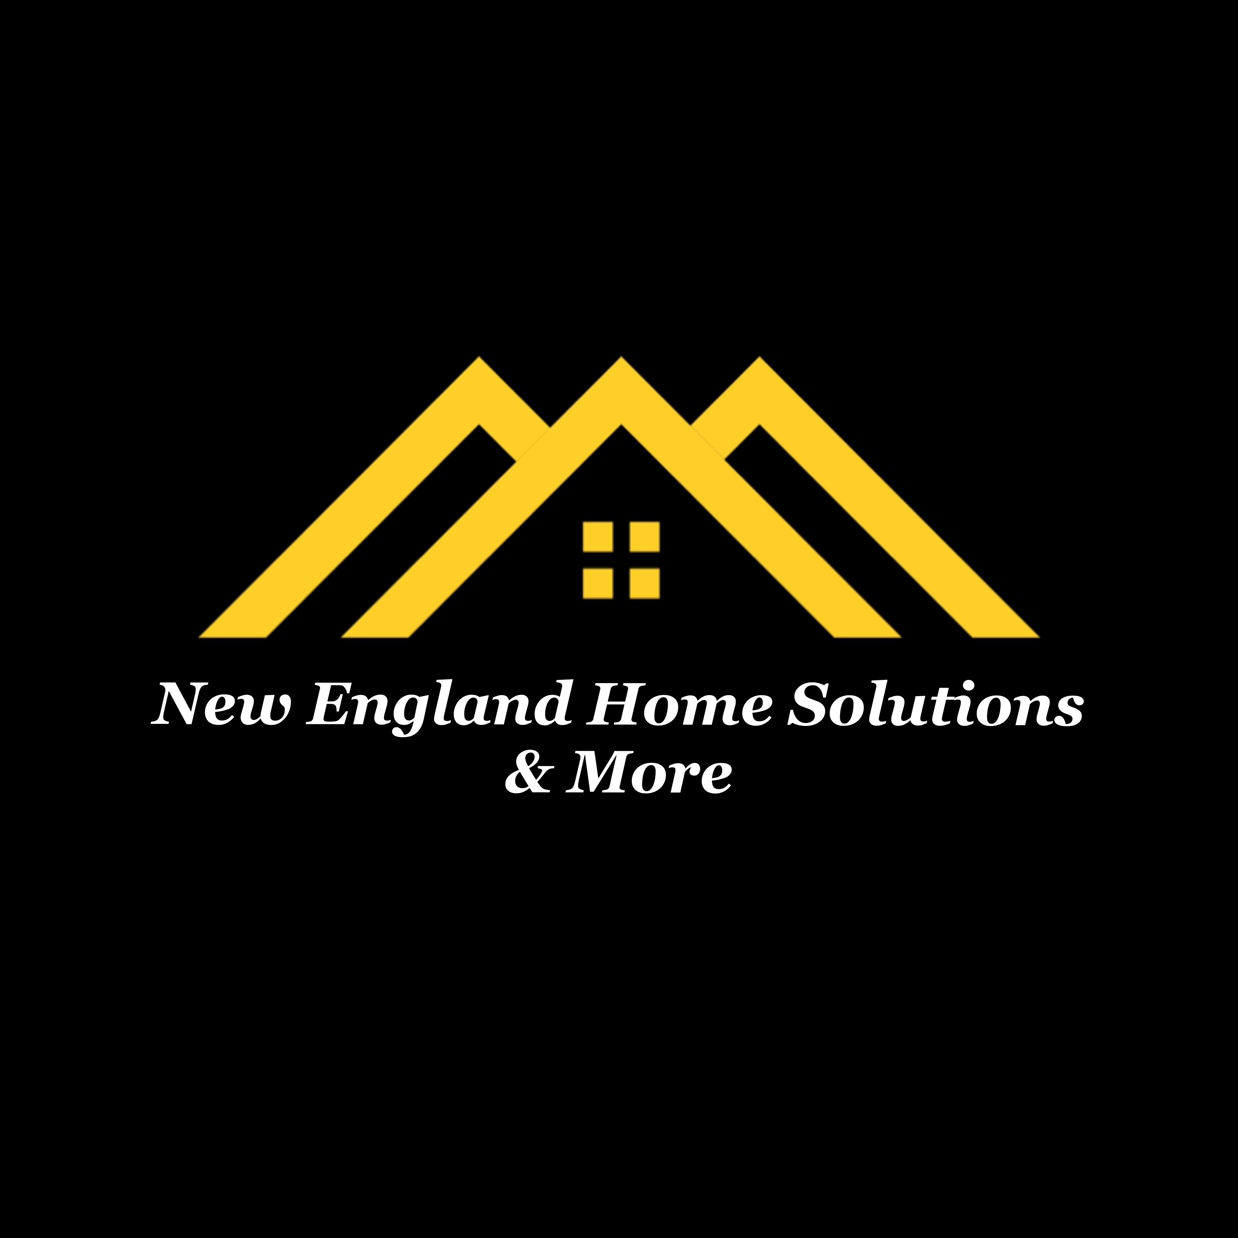 New England Home Solutions & More LLC